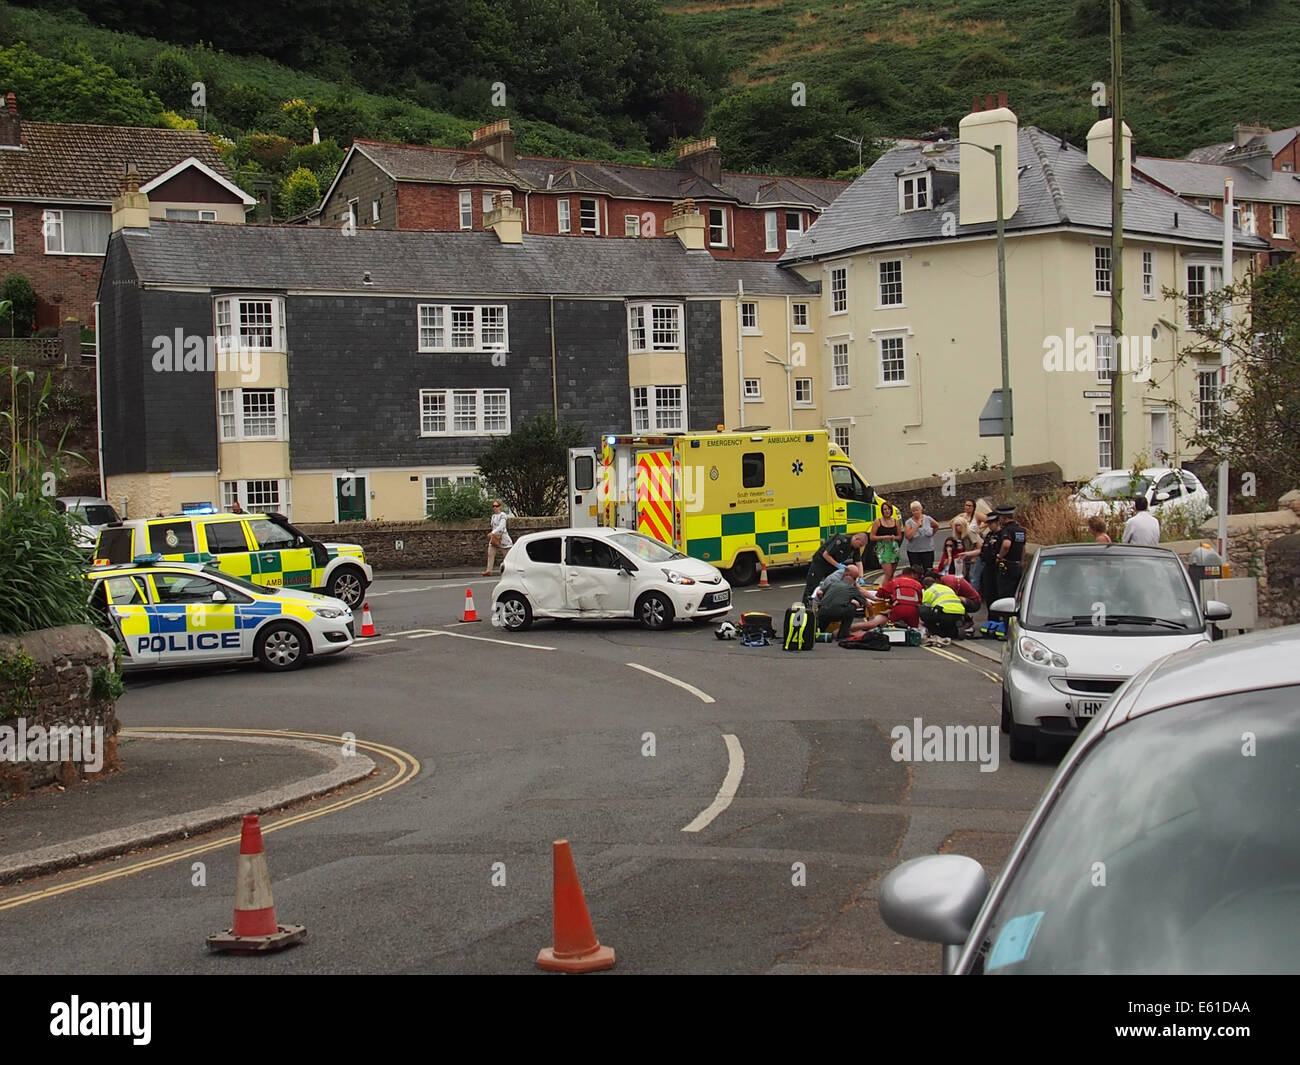 ROAD TRAFFIC ACCIDENT - Stock Image